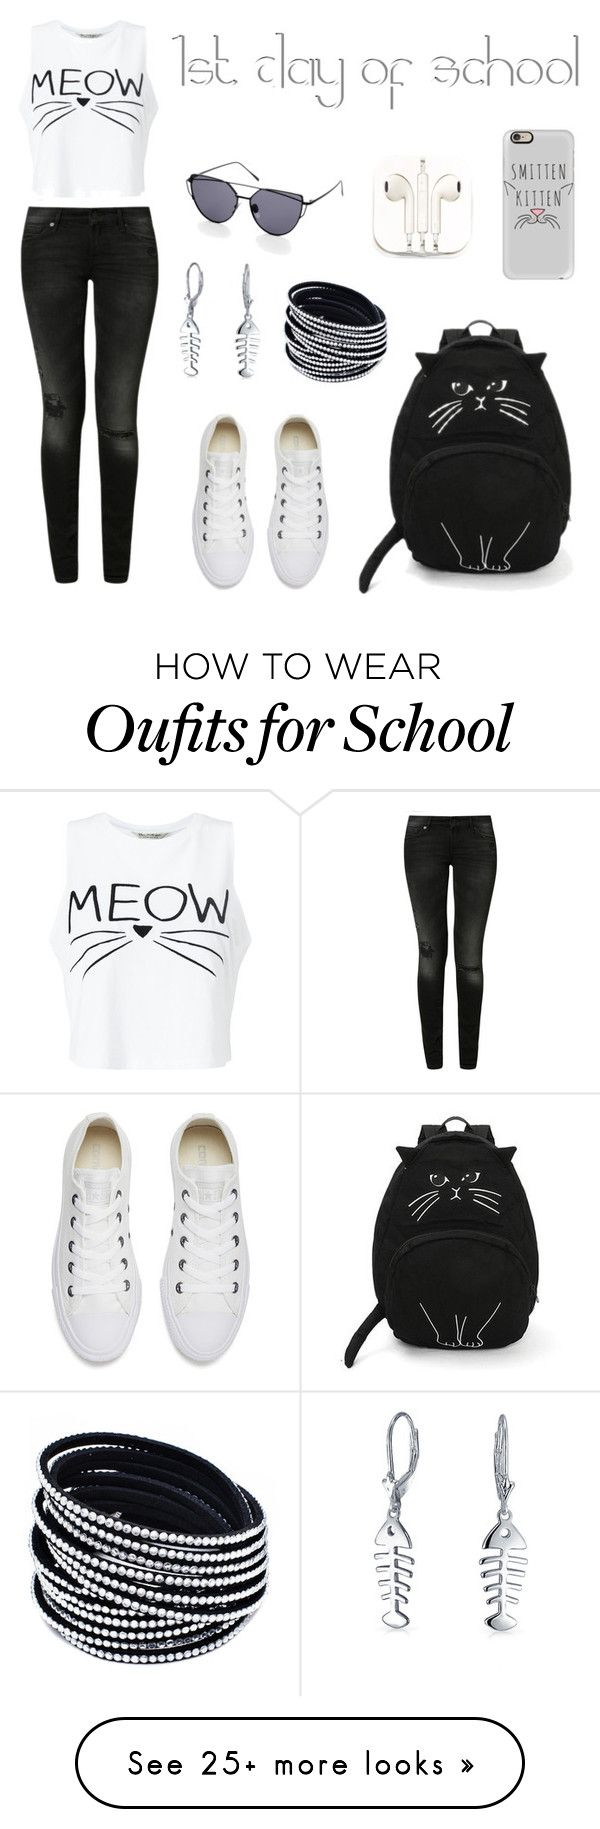 """""""First Day of School outfit"""" by angelarmoyer on Polyvore featuring 7 For All Mankind, Miss Selfridge, Converse, Bling Jewelry, Casetify and PhunkeeTree"""